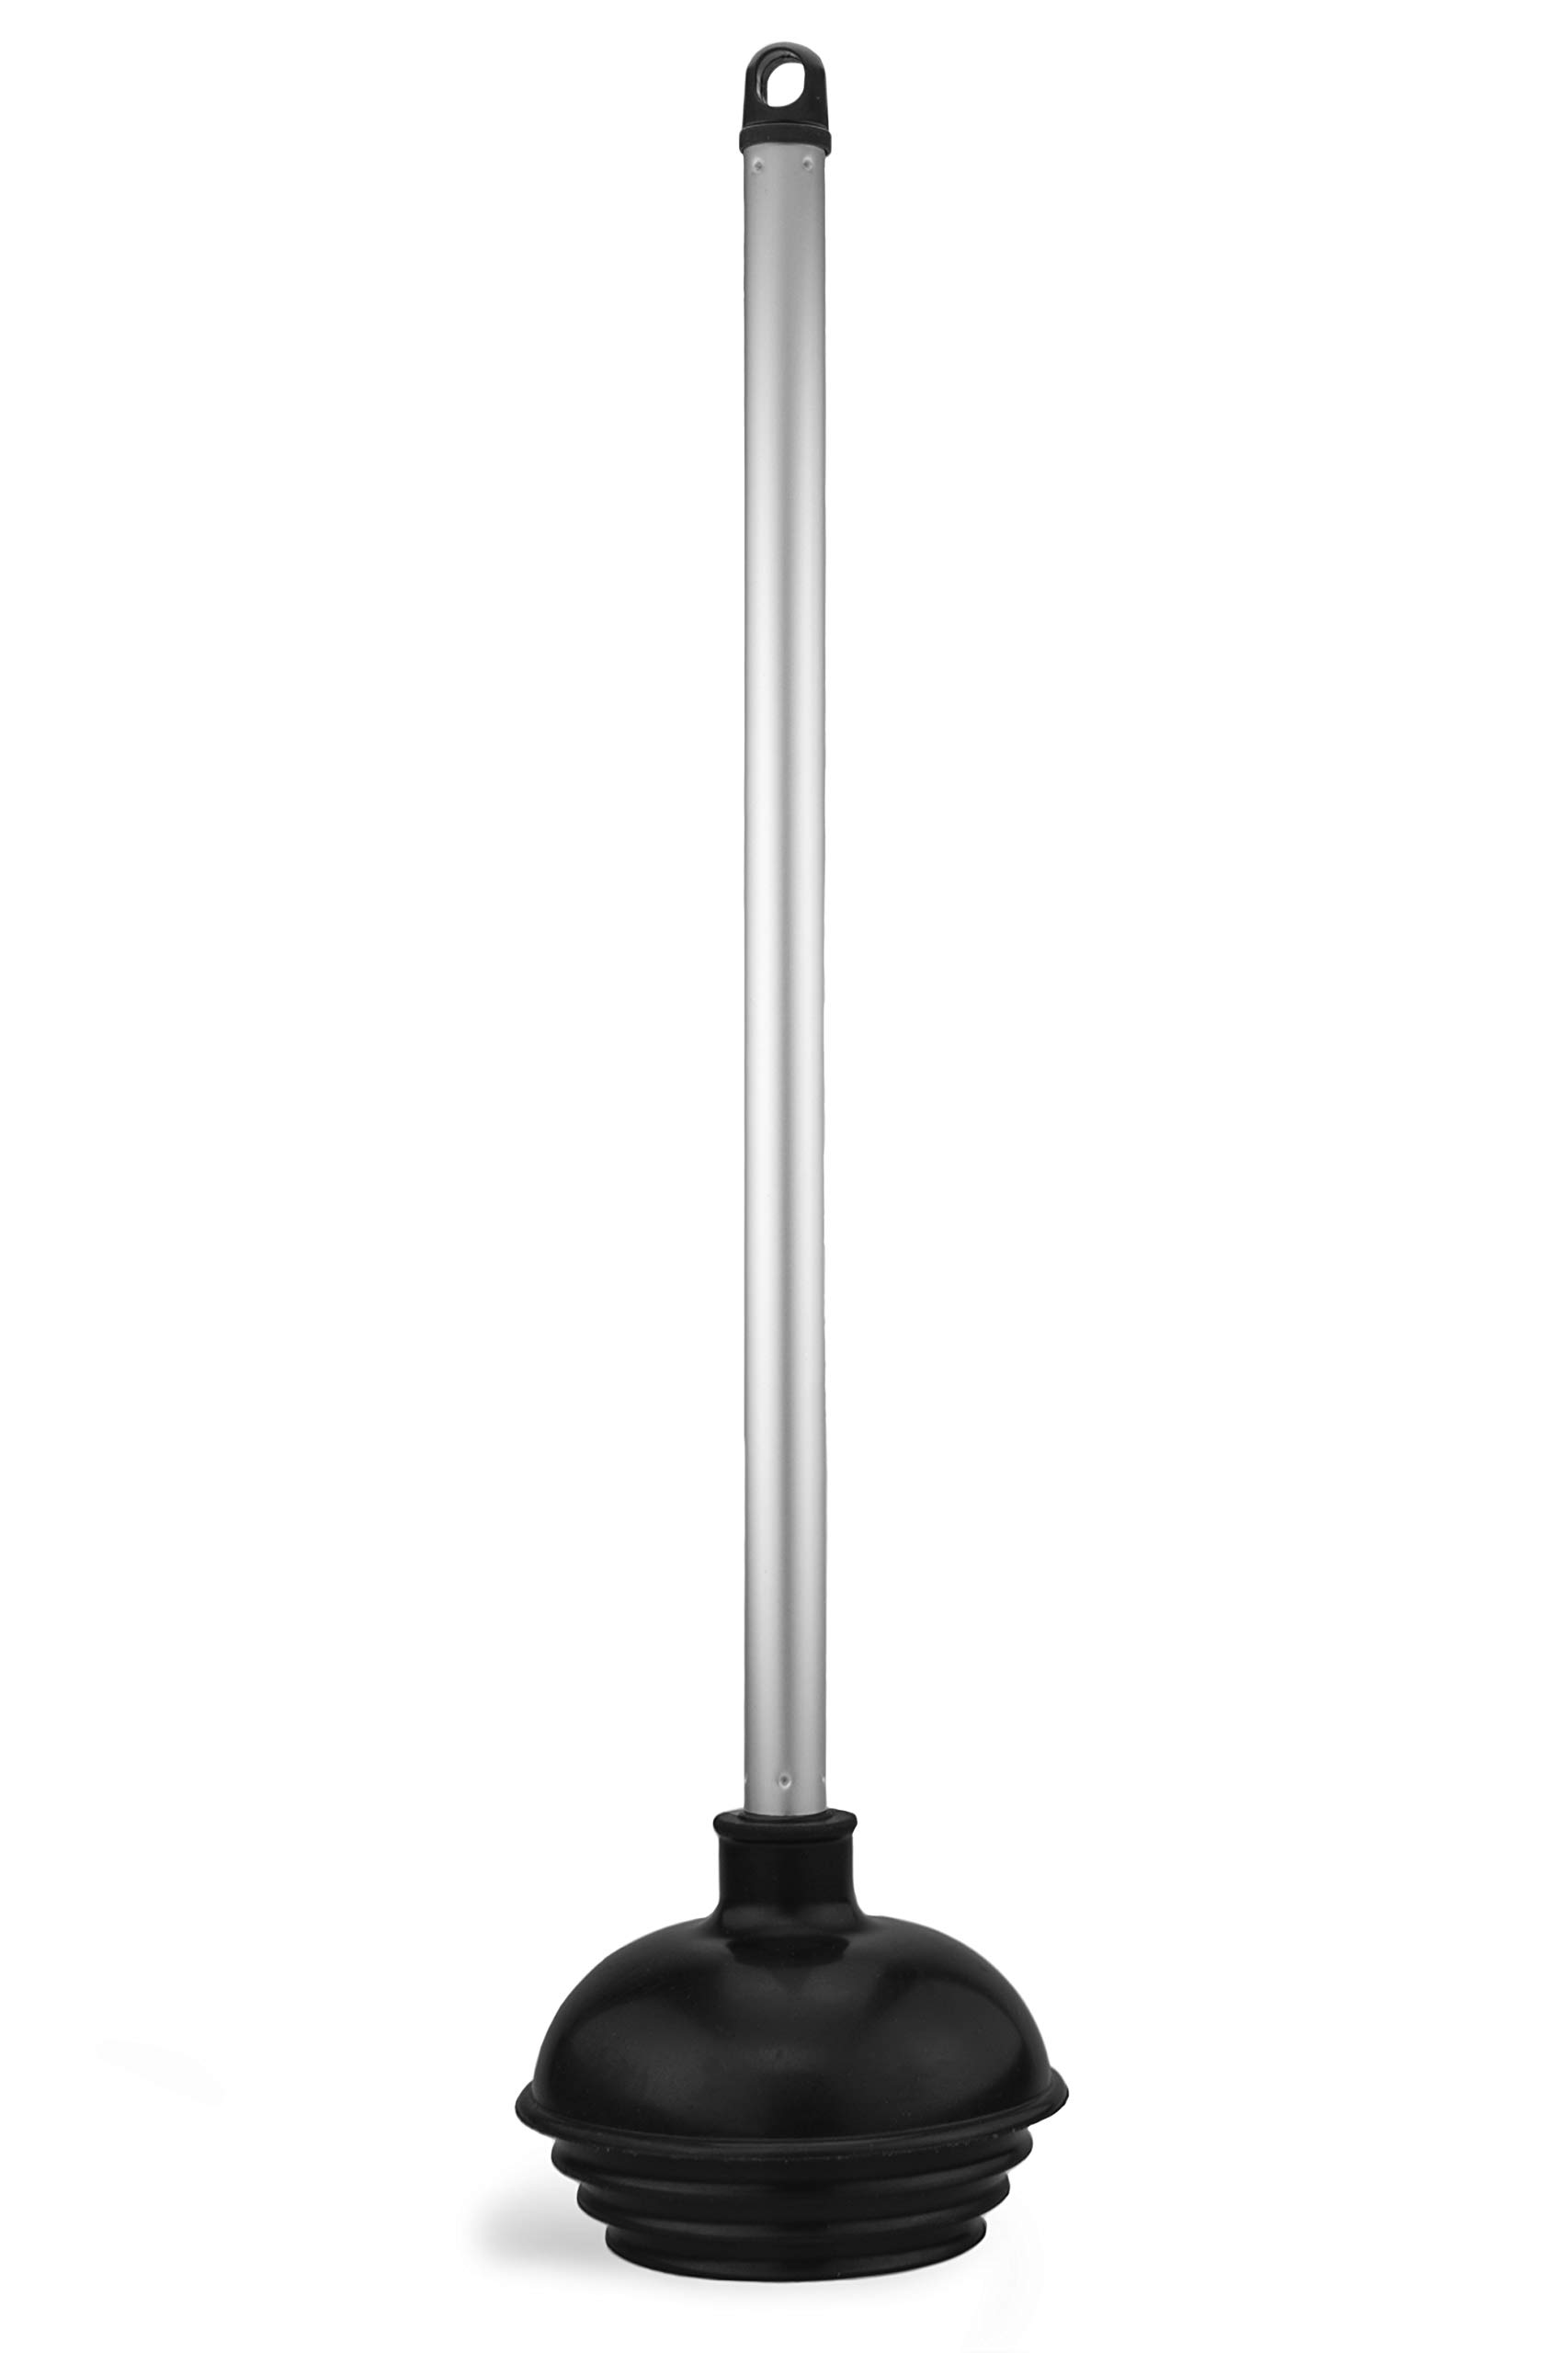 Neiko 60166A Toilet Plunger with Patented All-Angle Design | Heavy Duty | Aluminum Handle by Neiko